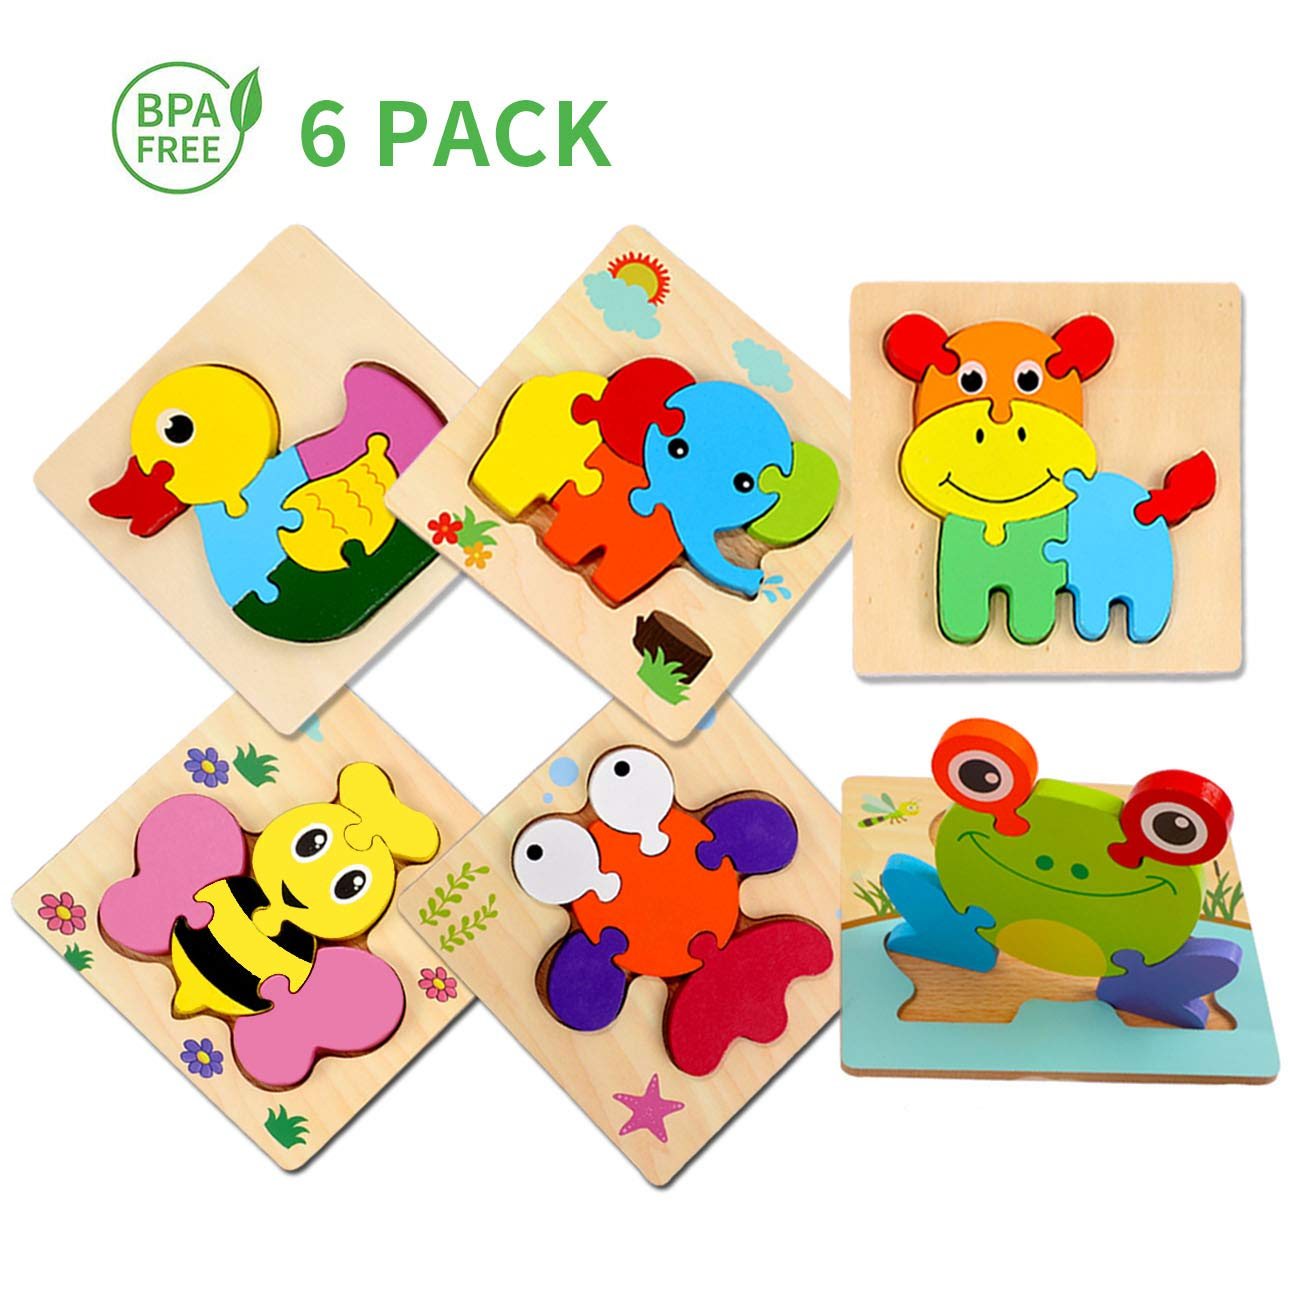 Sendida Wooden Jigsaw Puzzles Toddlers Toys - Montessori Toys Animals Shape Puzzle 1 2 3 4 Year Old, Preschool Puzzles Set for Kids Children, Shape Color Learning Educational Blocks Kids Gift (6 Pack)